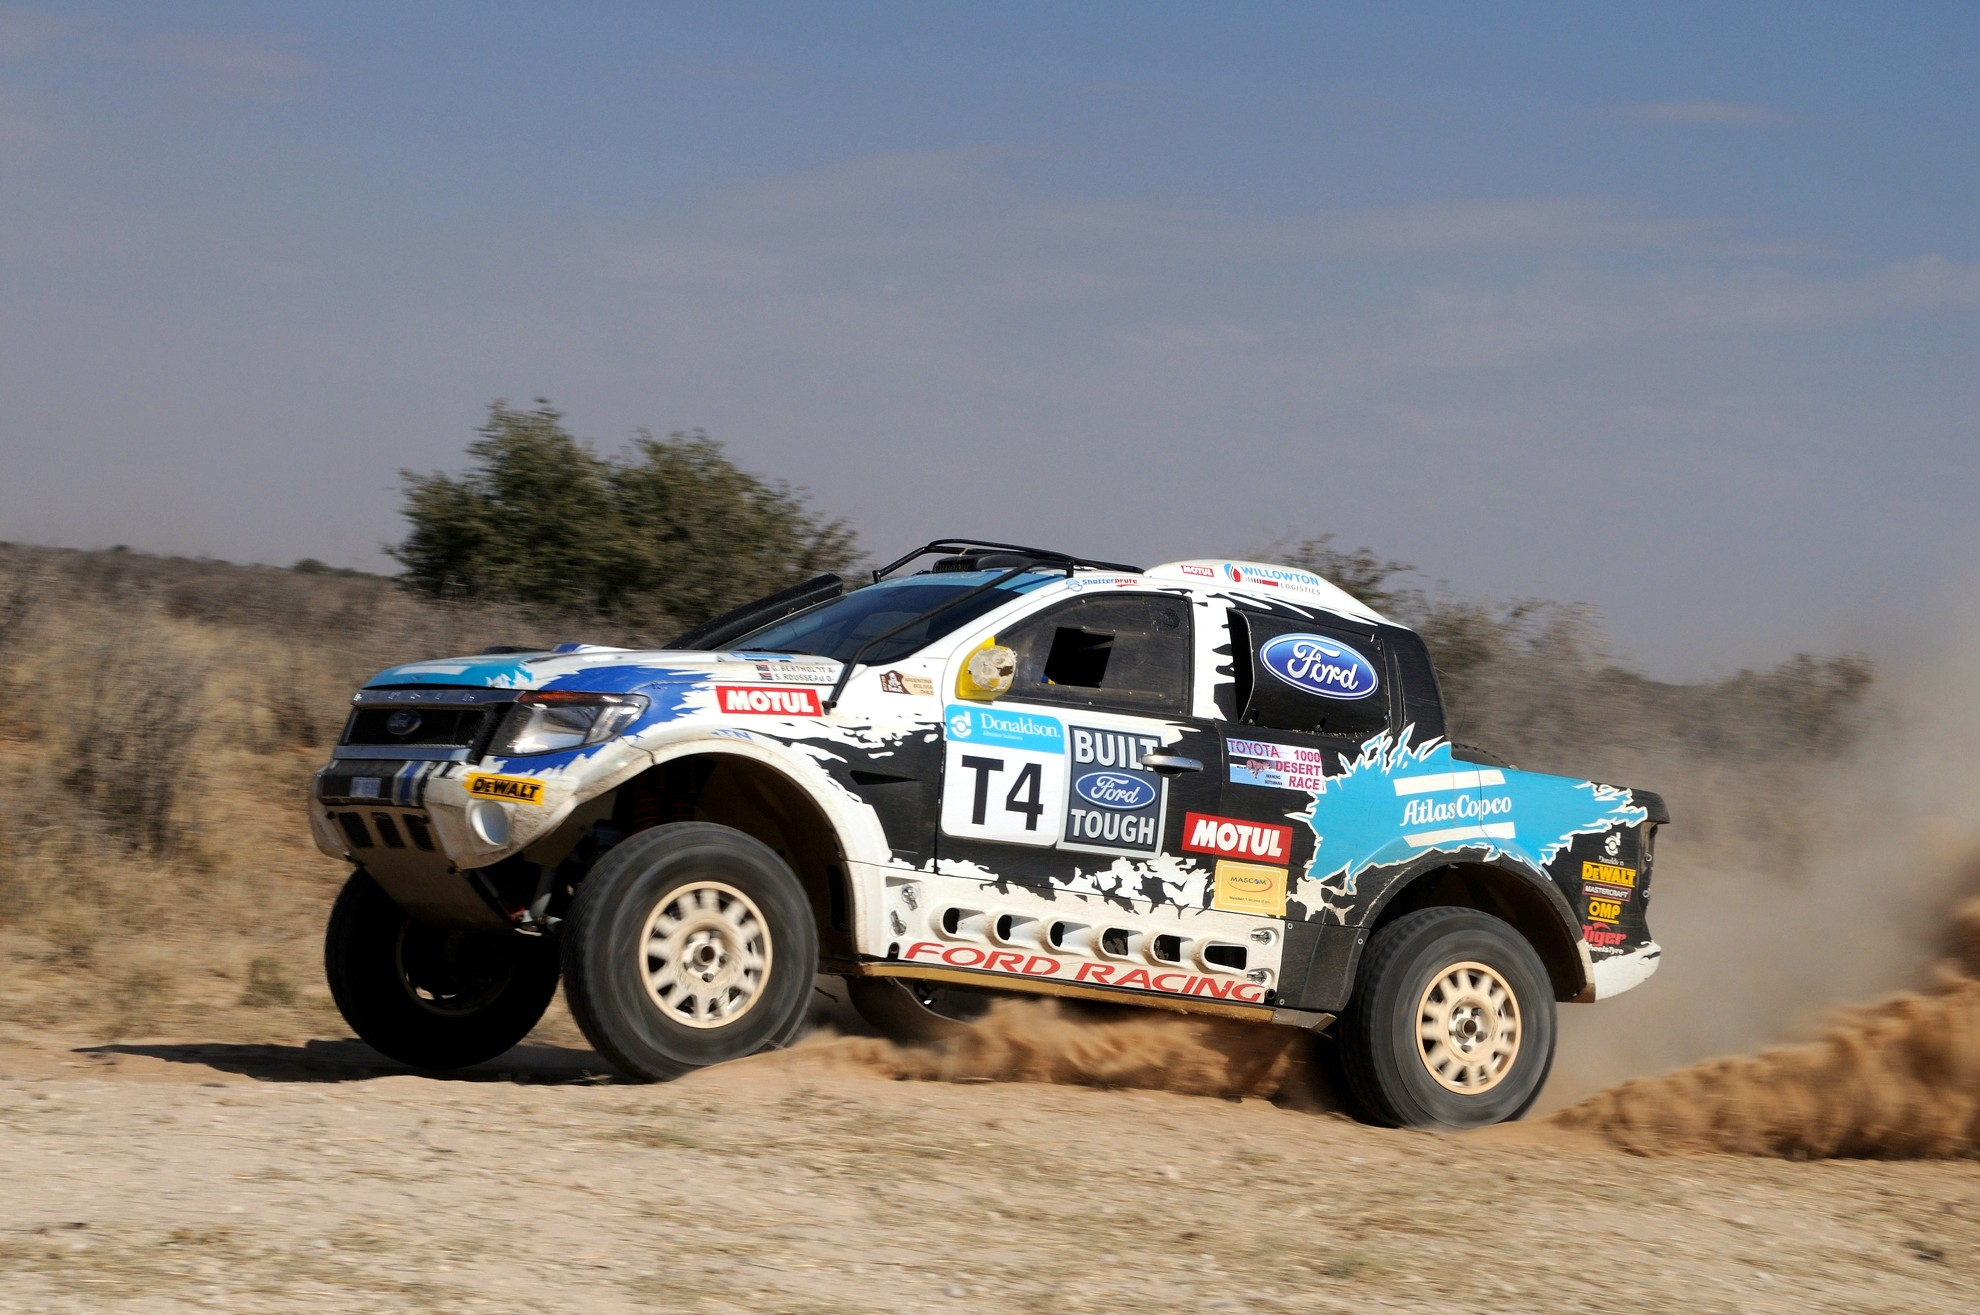 Atlas_Copco_Ford_Racing